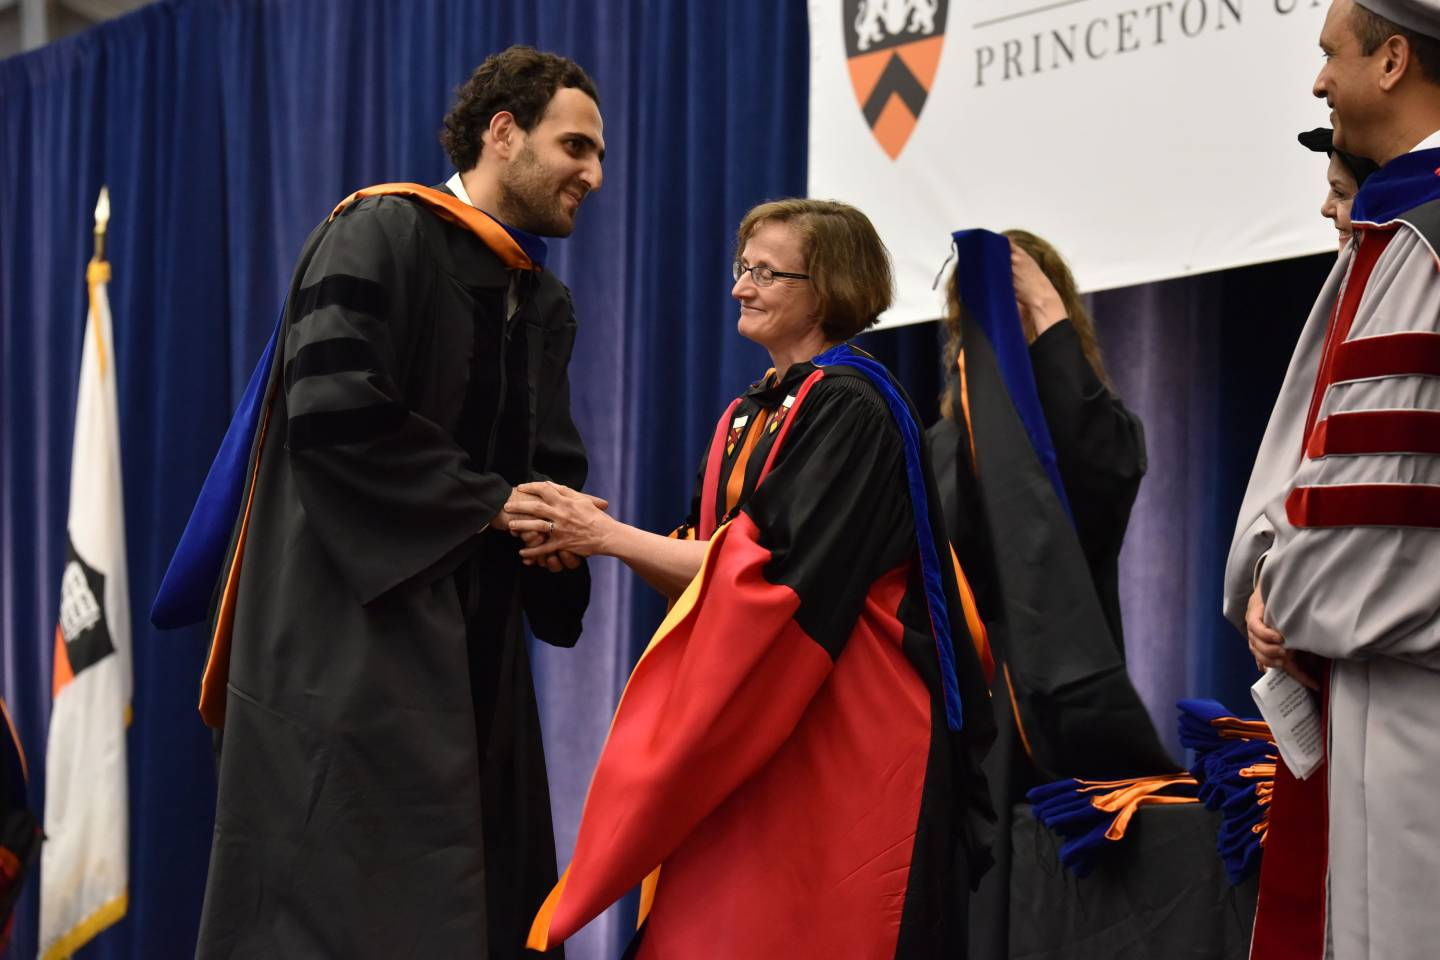 Student shakes hands with advisor at hooding